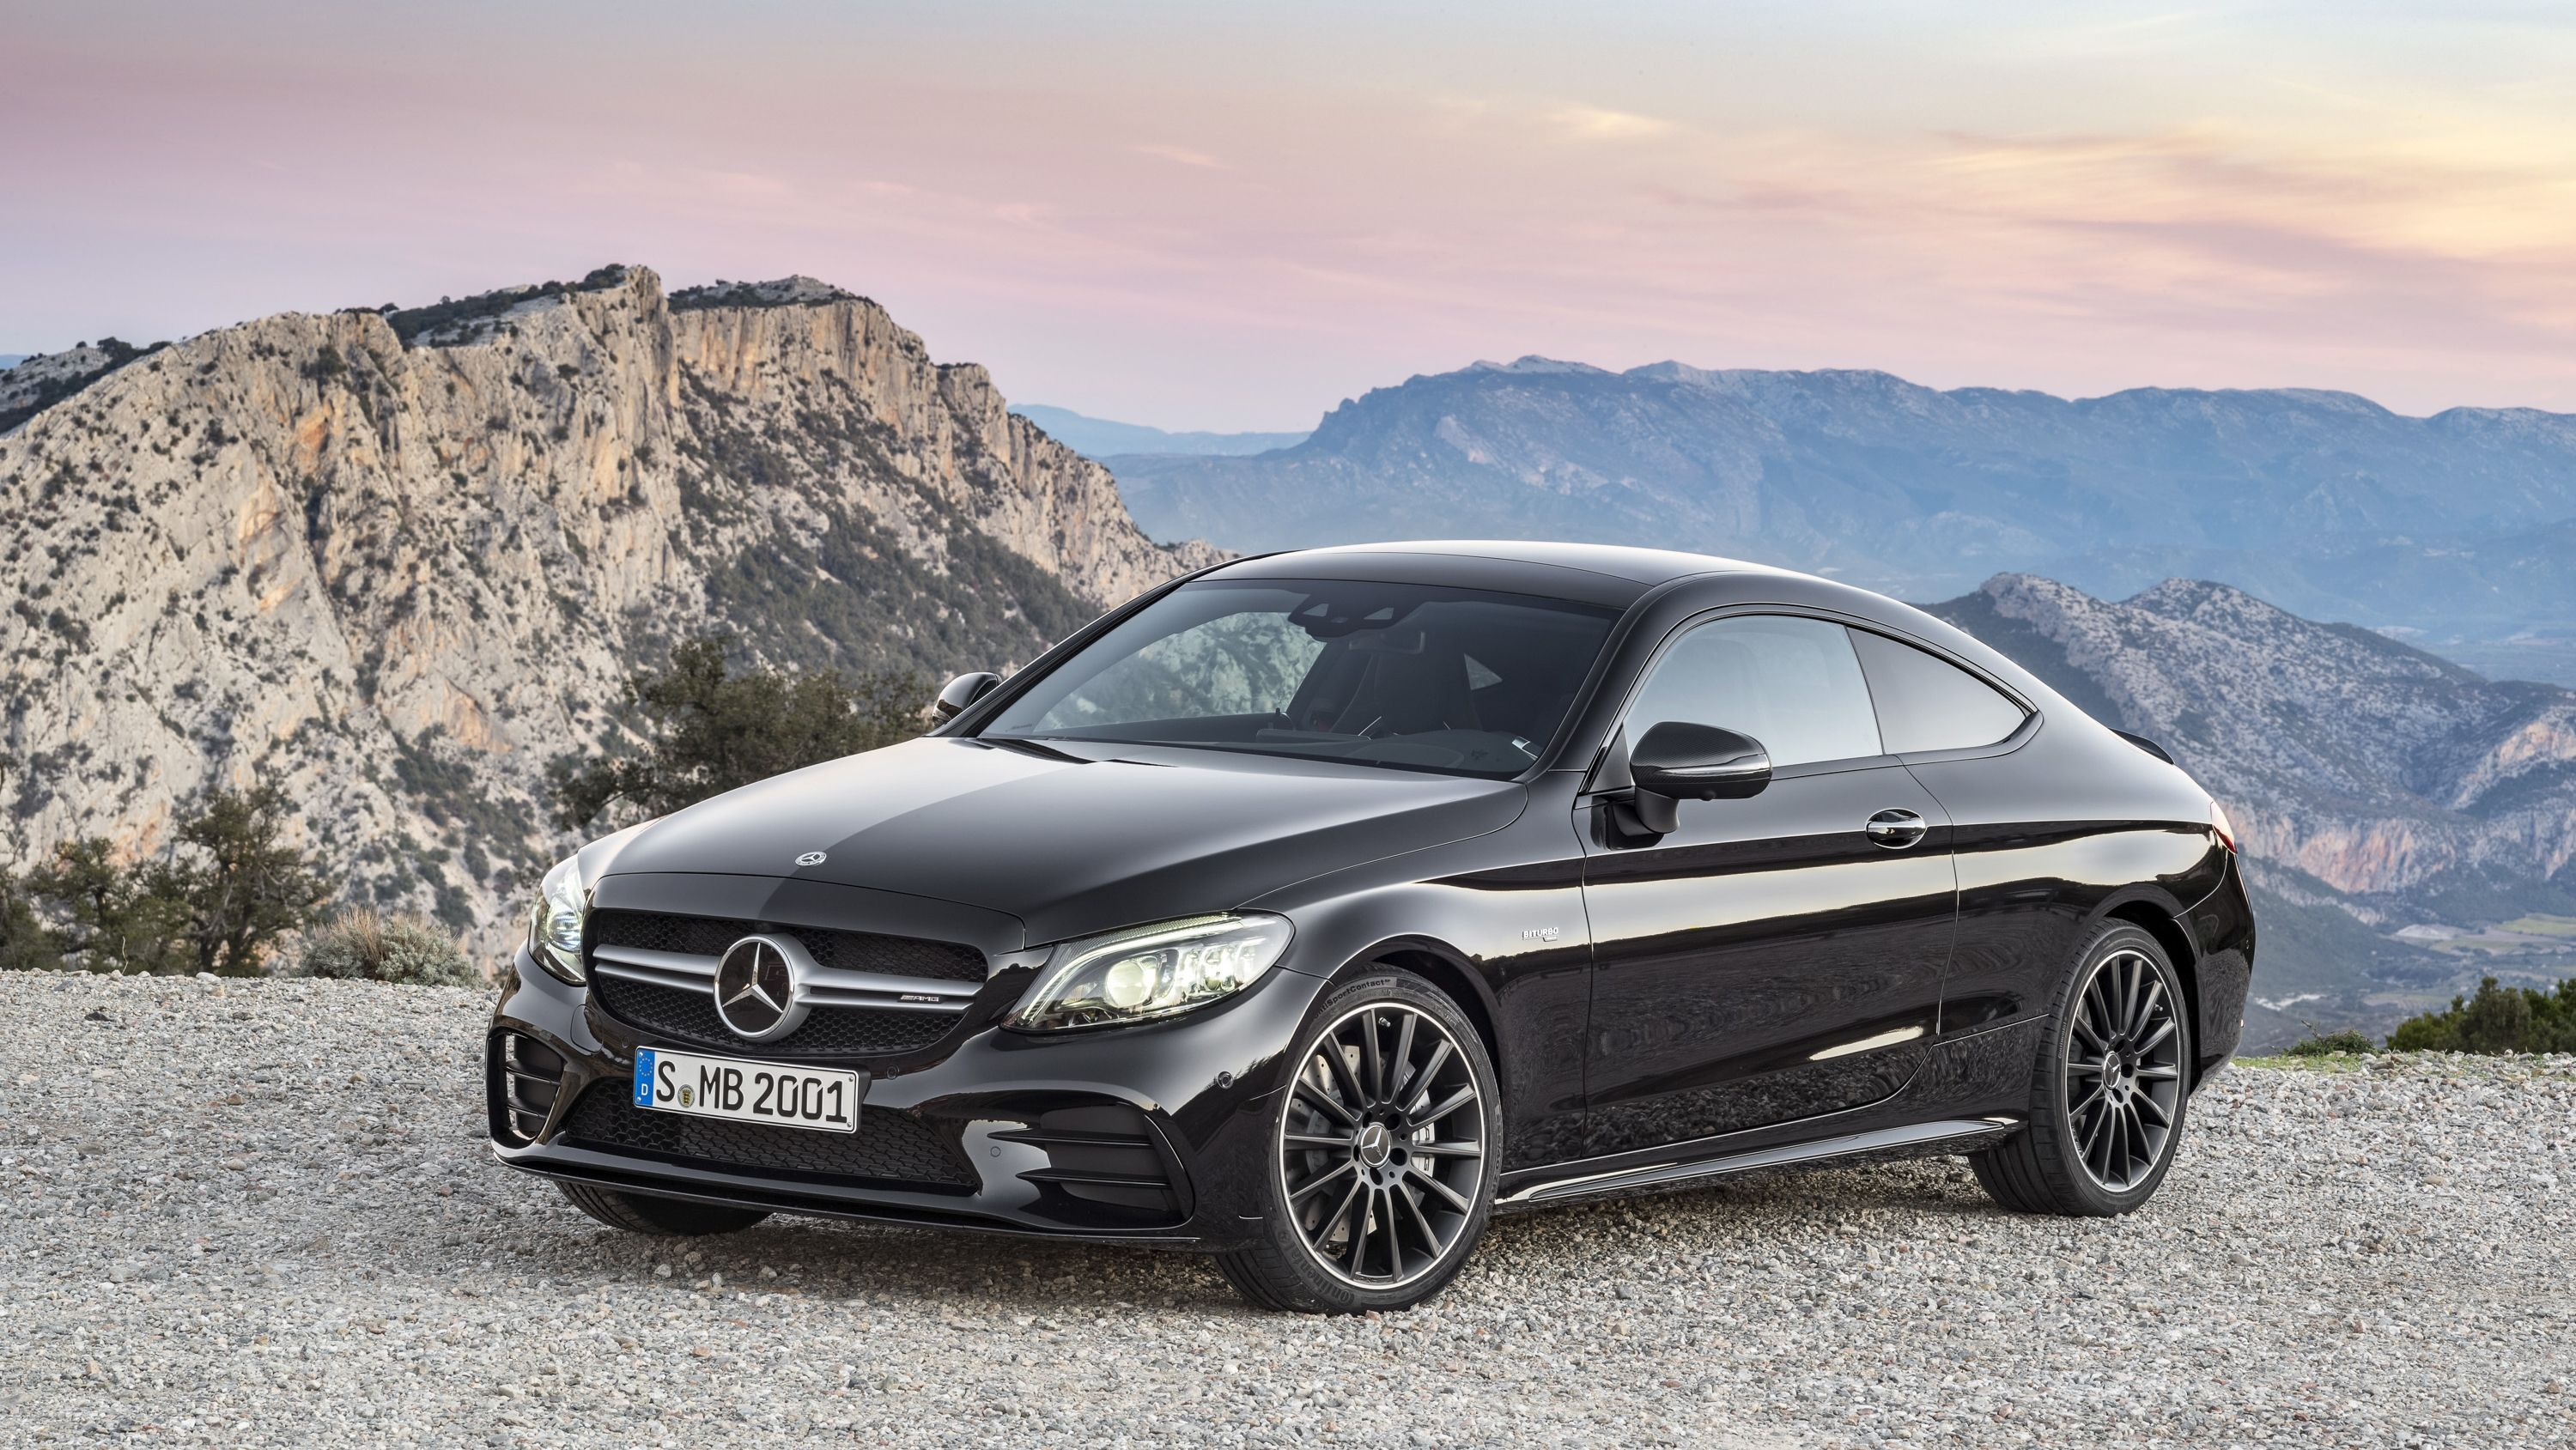 Wallpaper Of The Day 2019 Mercedes Amg C43 Coupe Mercedes C